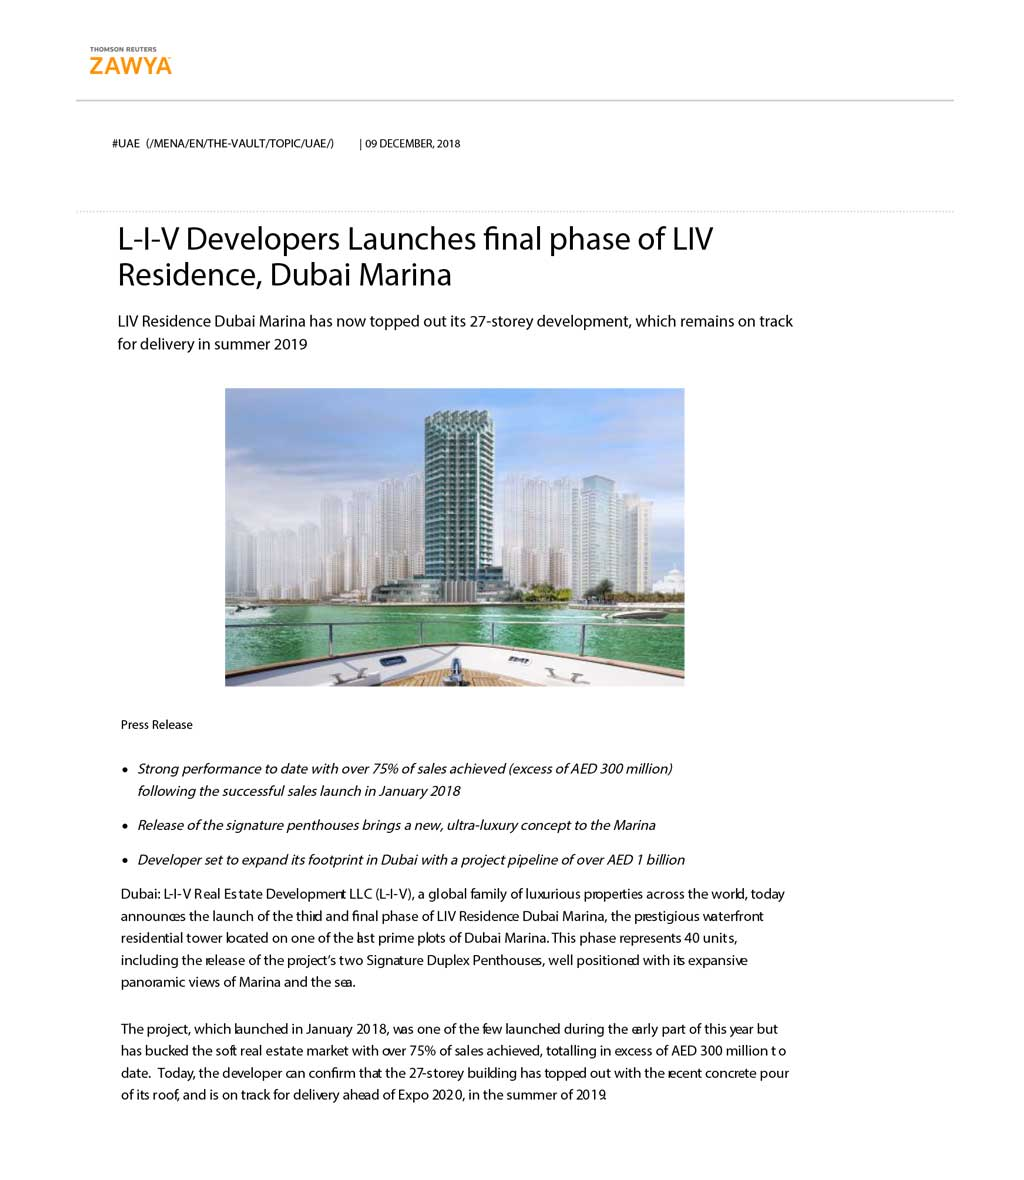 L-I-V Developers Launches final phase of LIV Residence, Dubai Marina